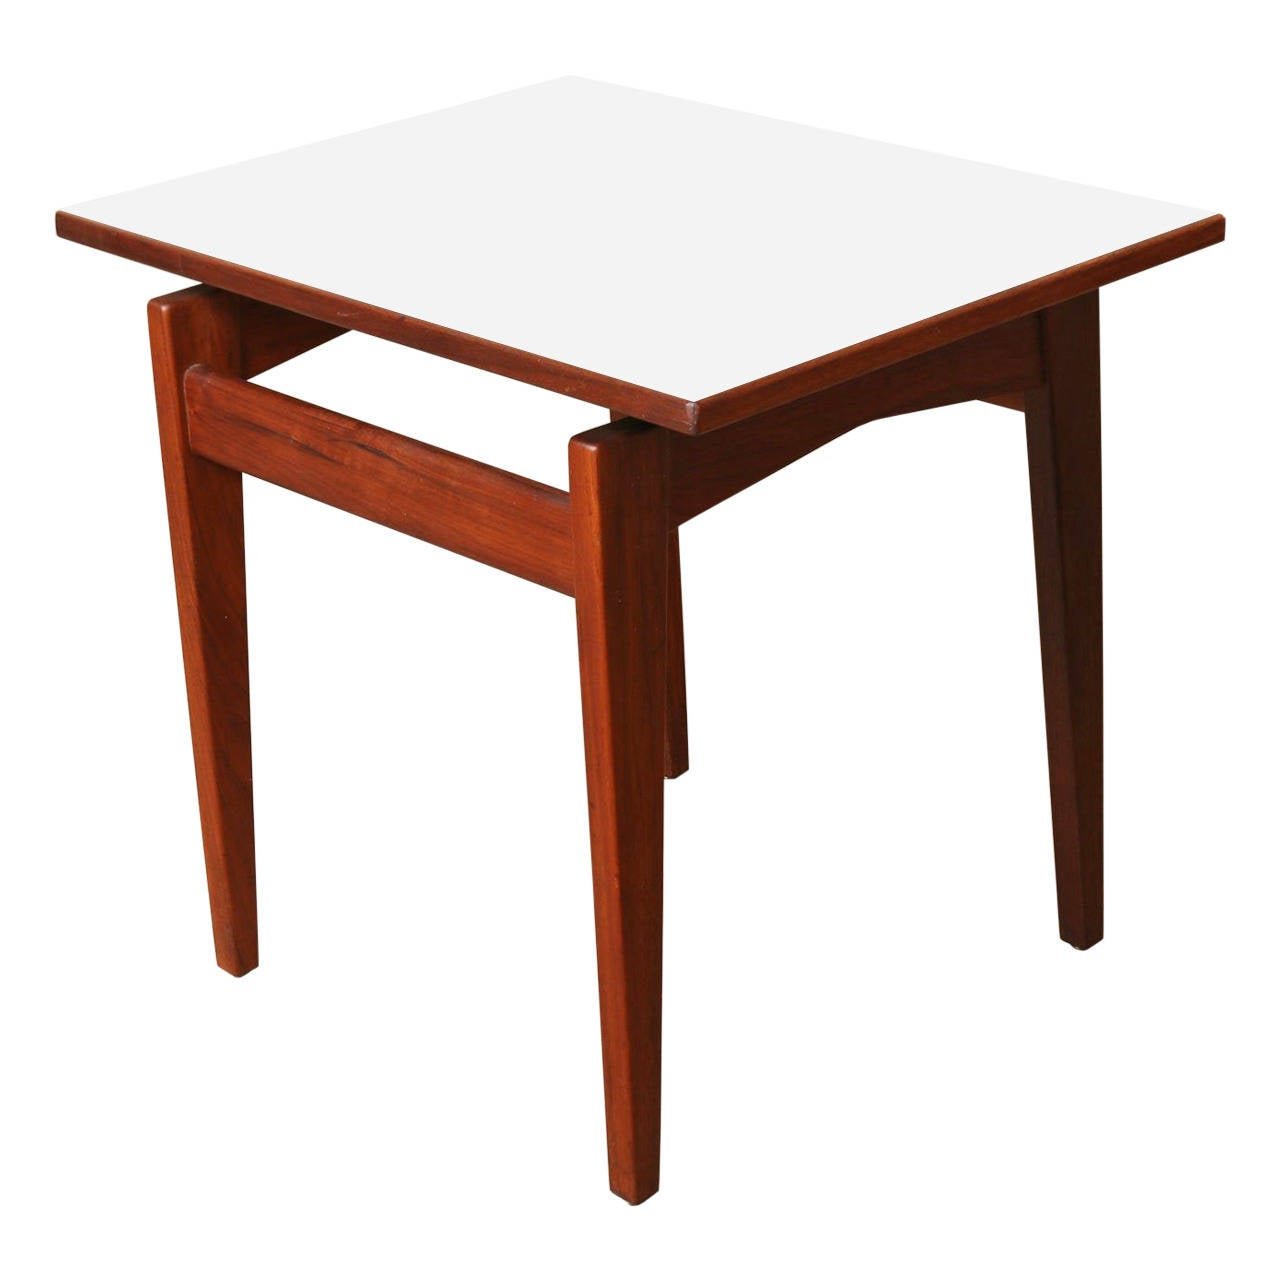 Jens risom walnut and formica side table at 1stdibs for Formica table